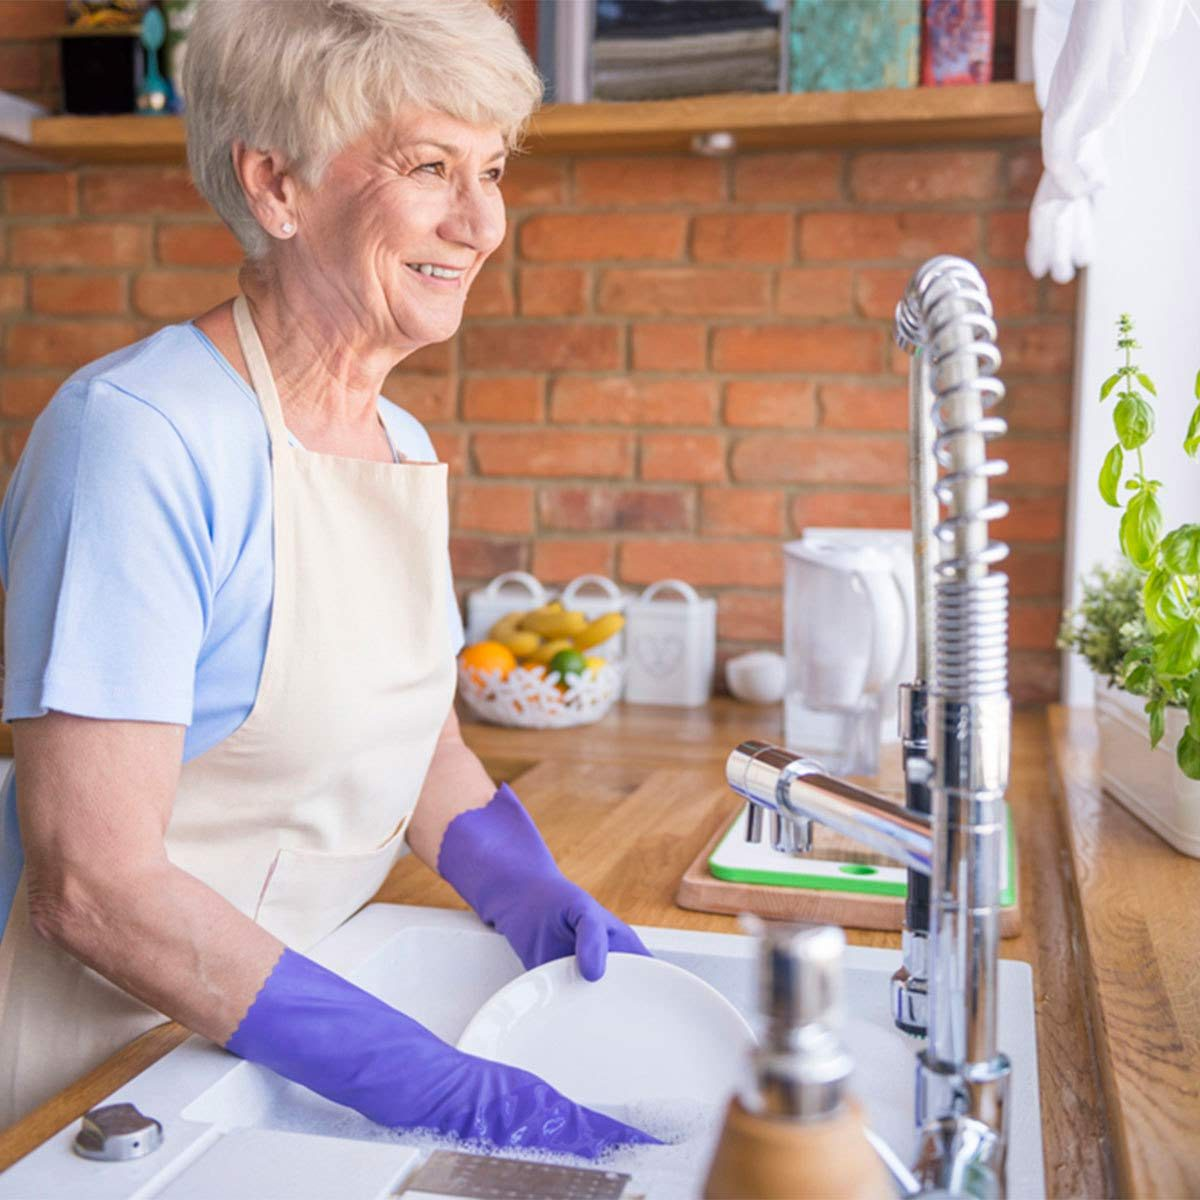 woman washing dishes in sink